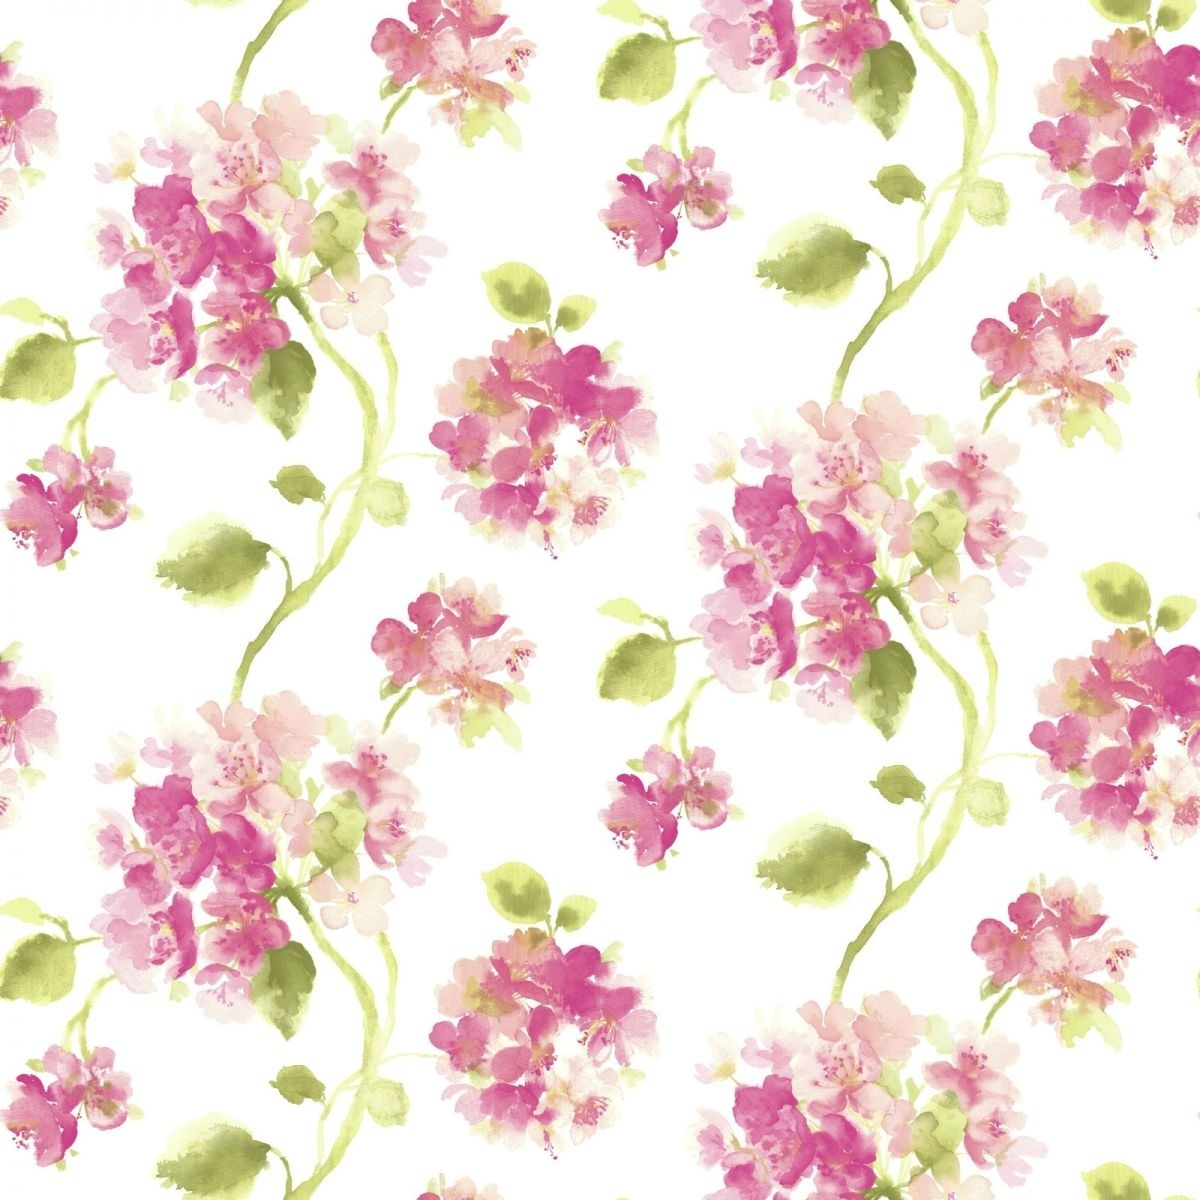 aquarelle pink floral wallpaper | ❥✿⚛patterns⚜⚜prints